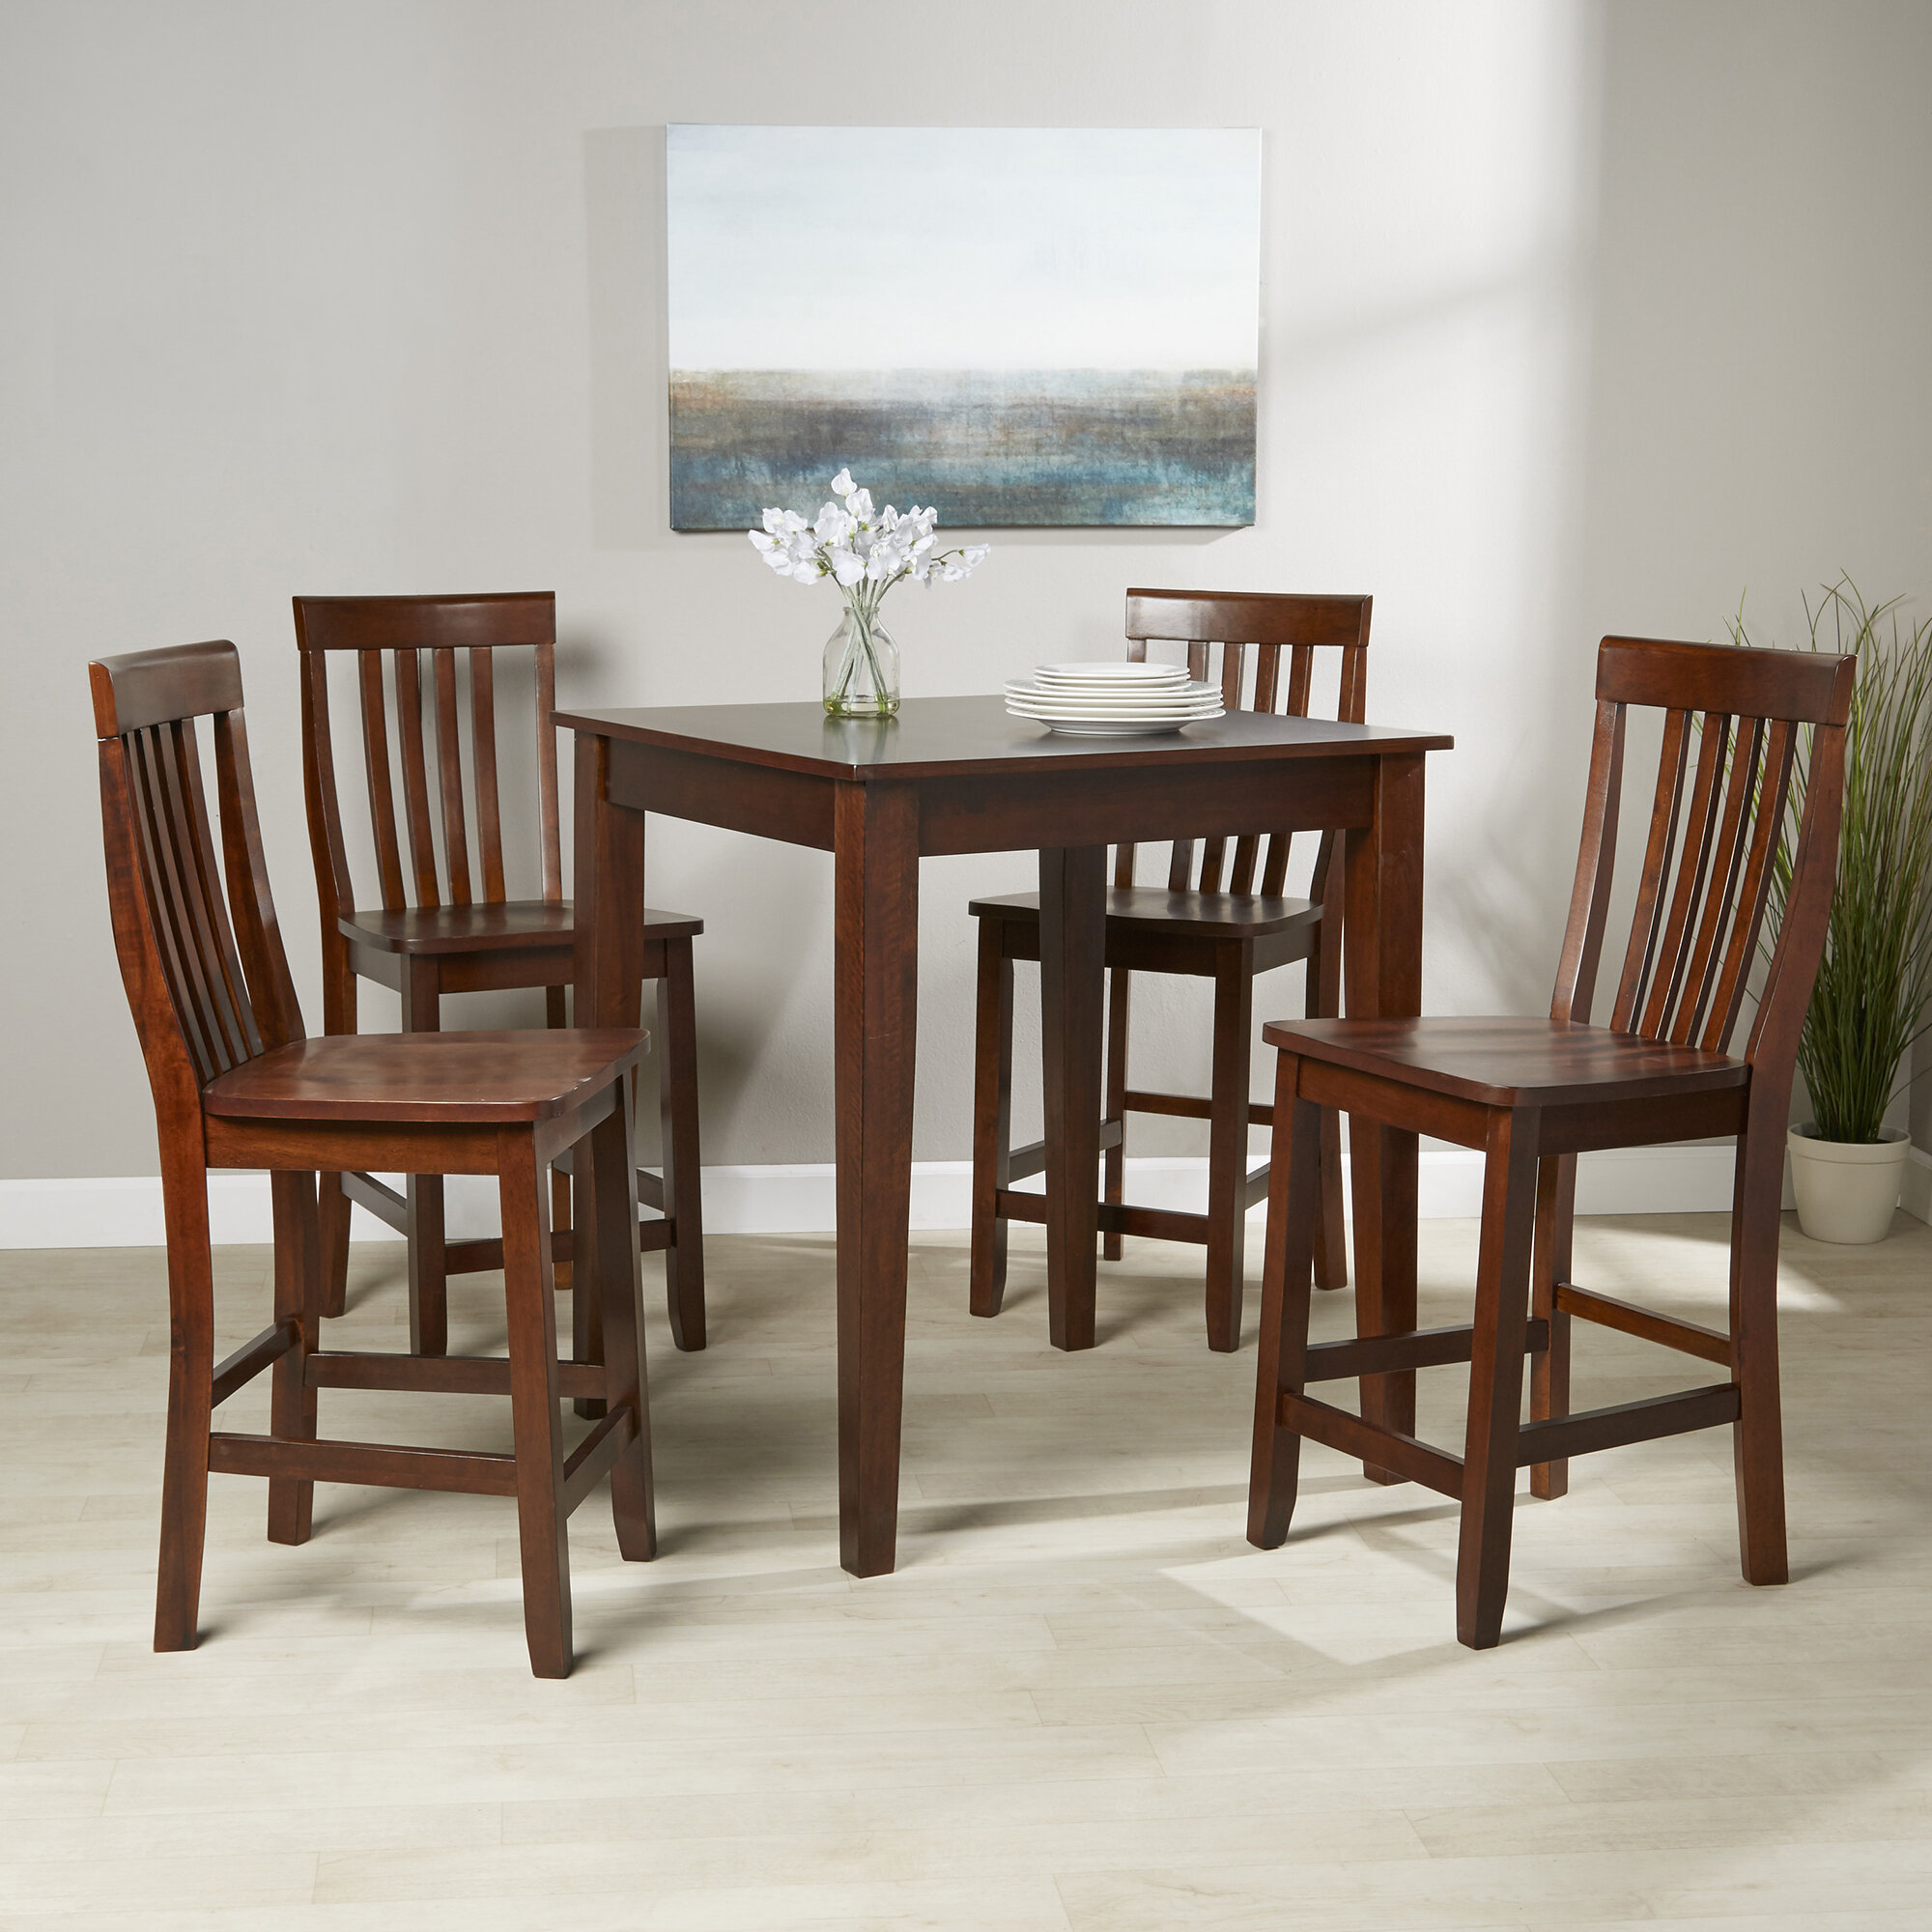 Mcgonigal 5 Piece Pub Table Set T